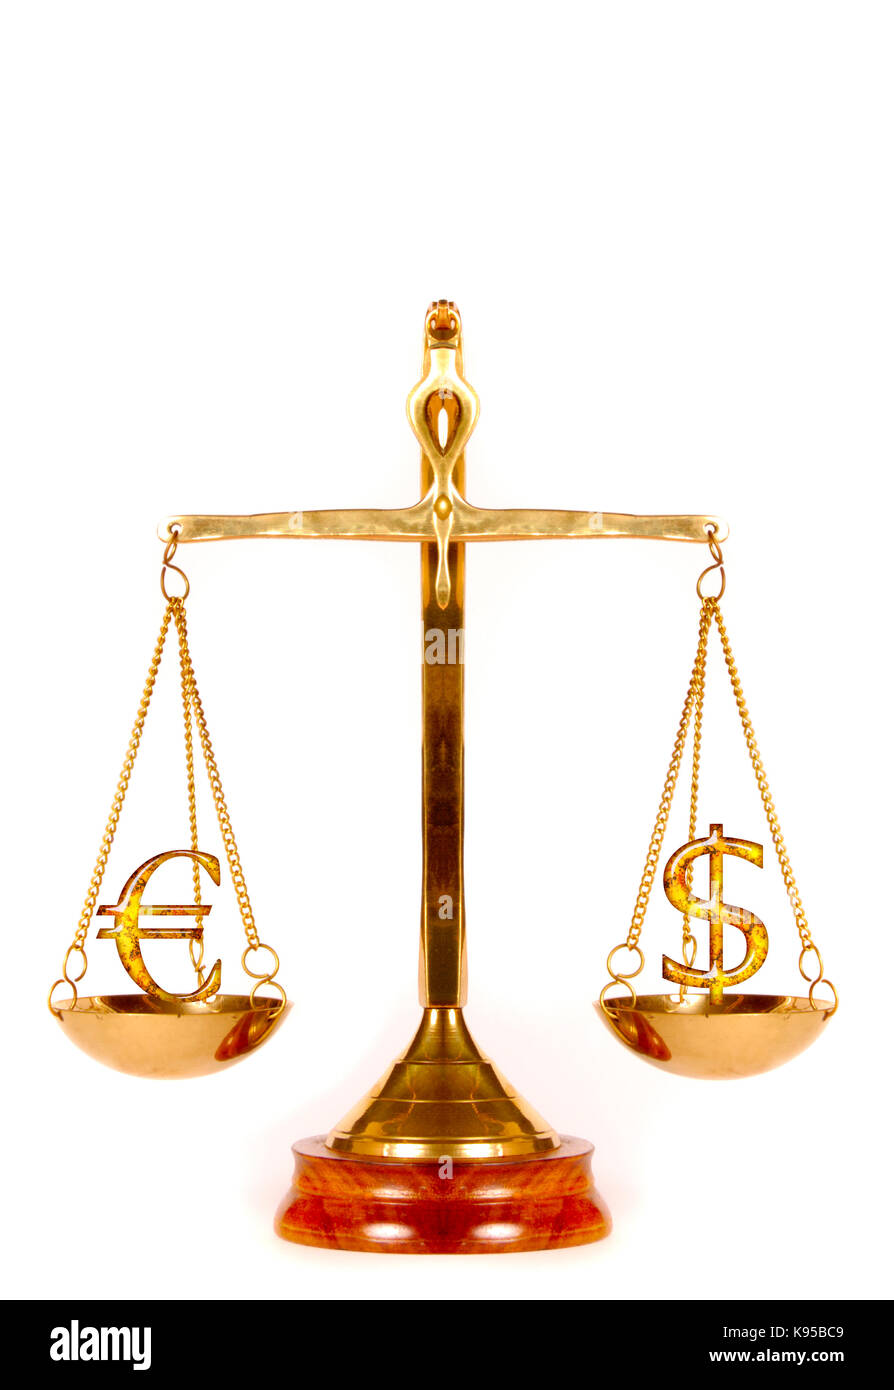 Euro and Dollar symbols on a weighing scale Stock Photo